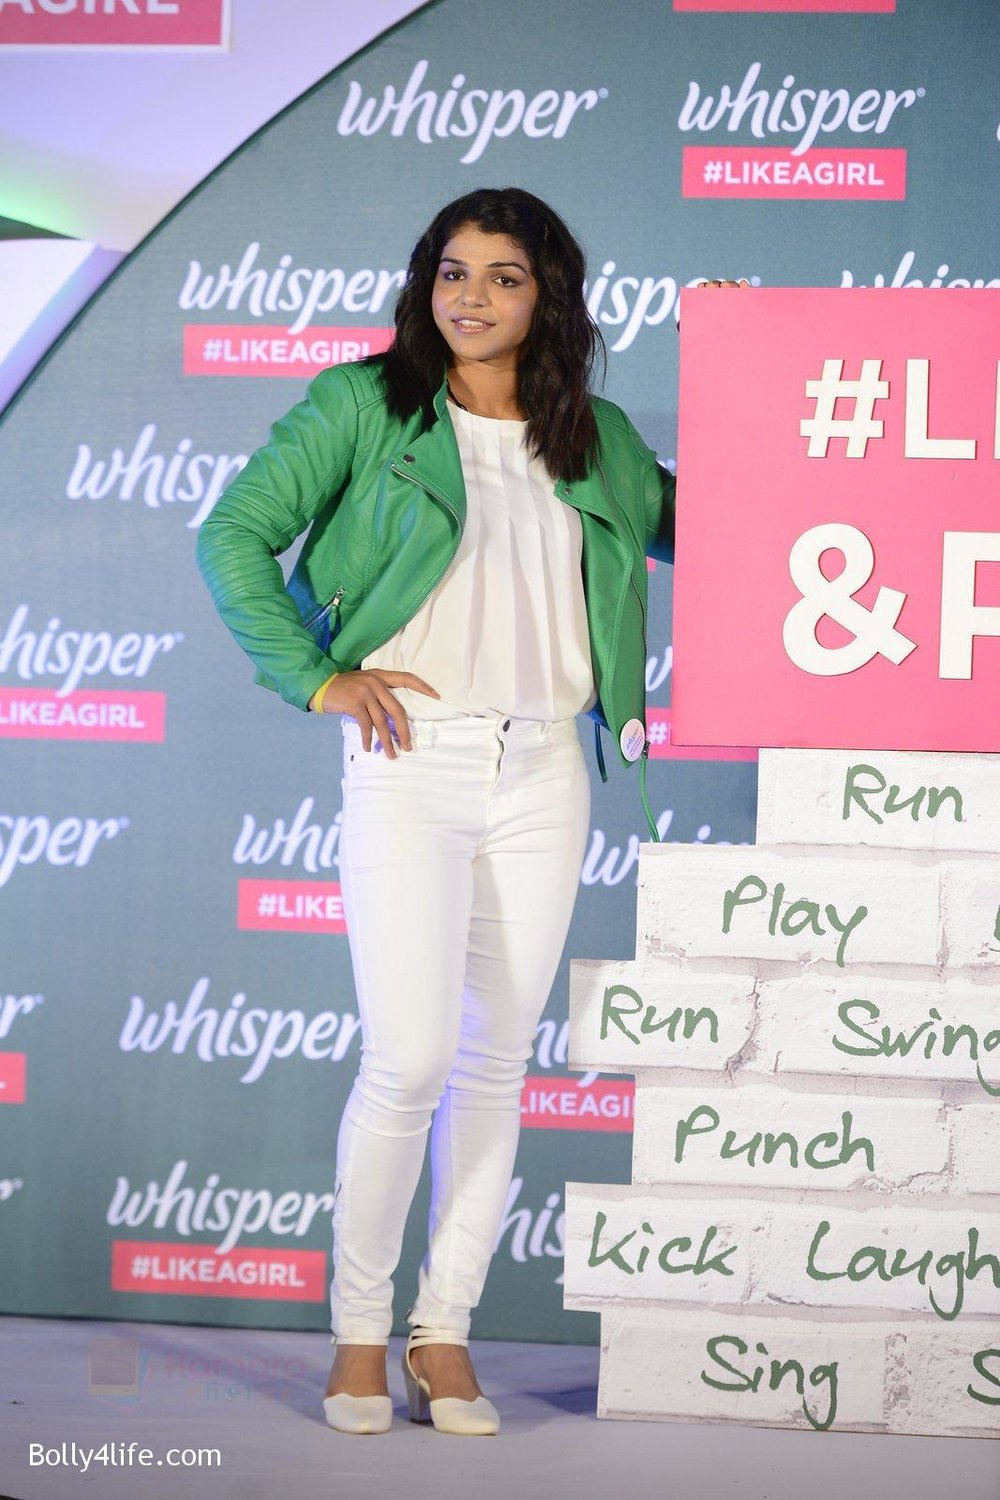 Sonakshi-Sinha-at-Whisper-new-campaign-launch-on-20th-Sept-2016-114.jpg